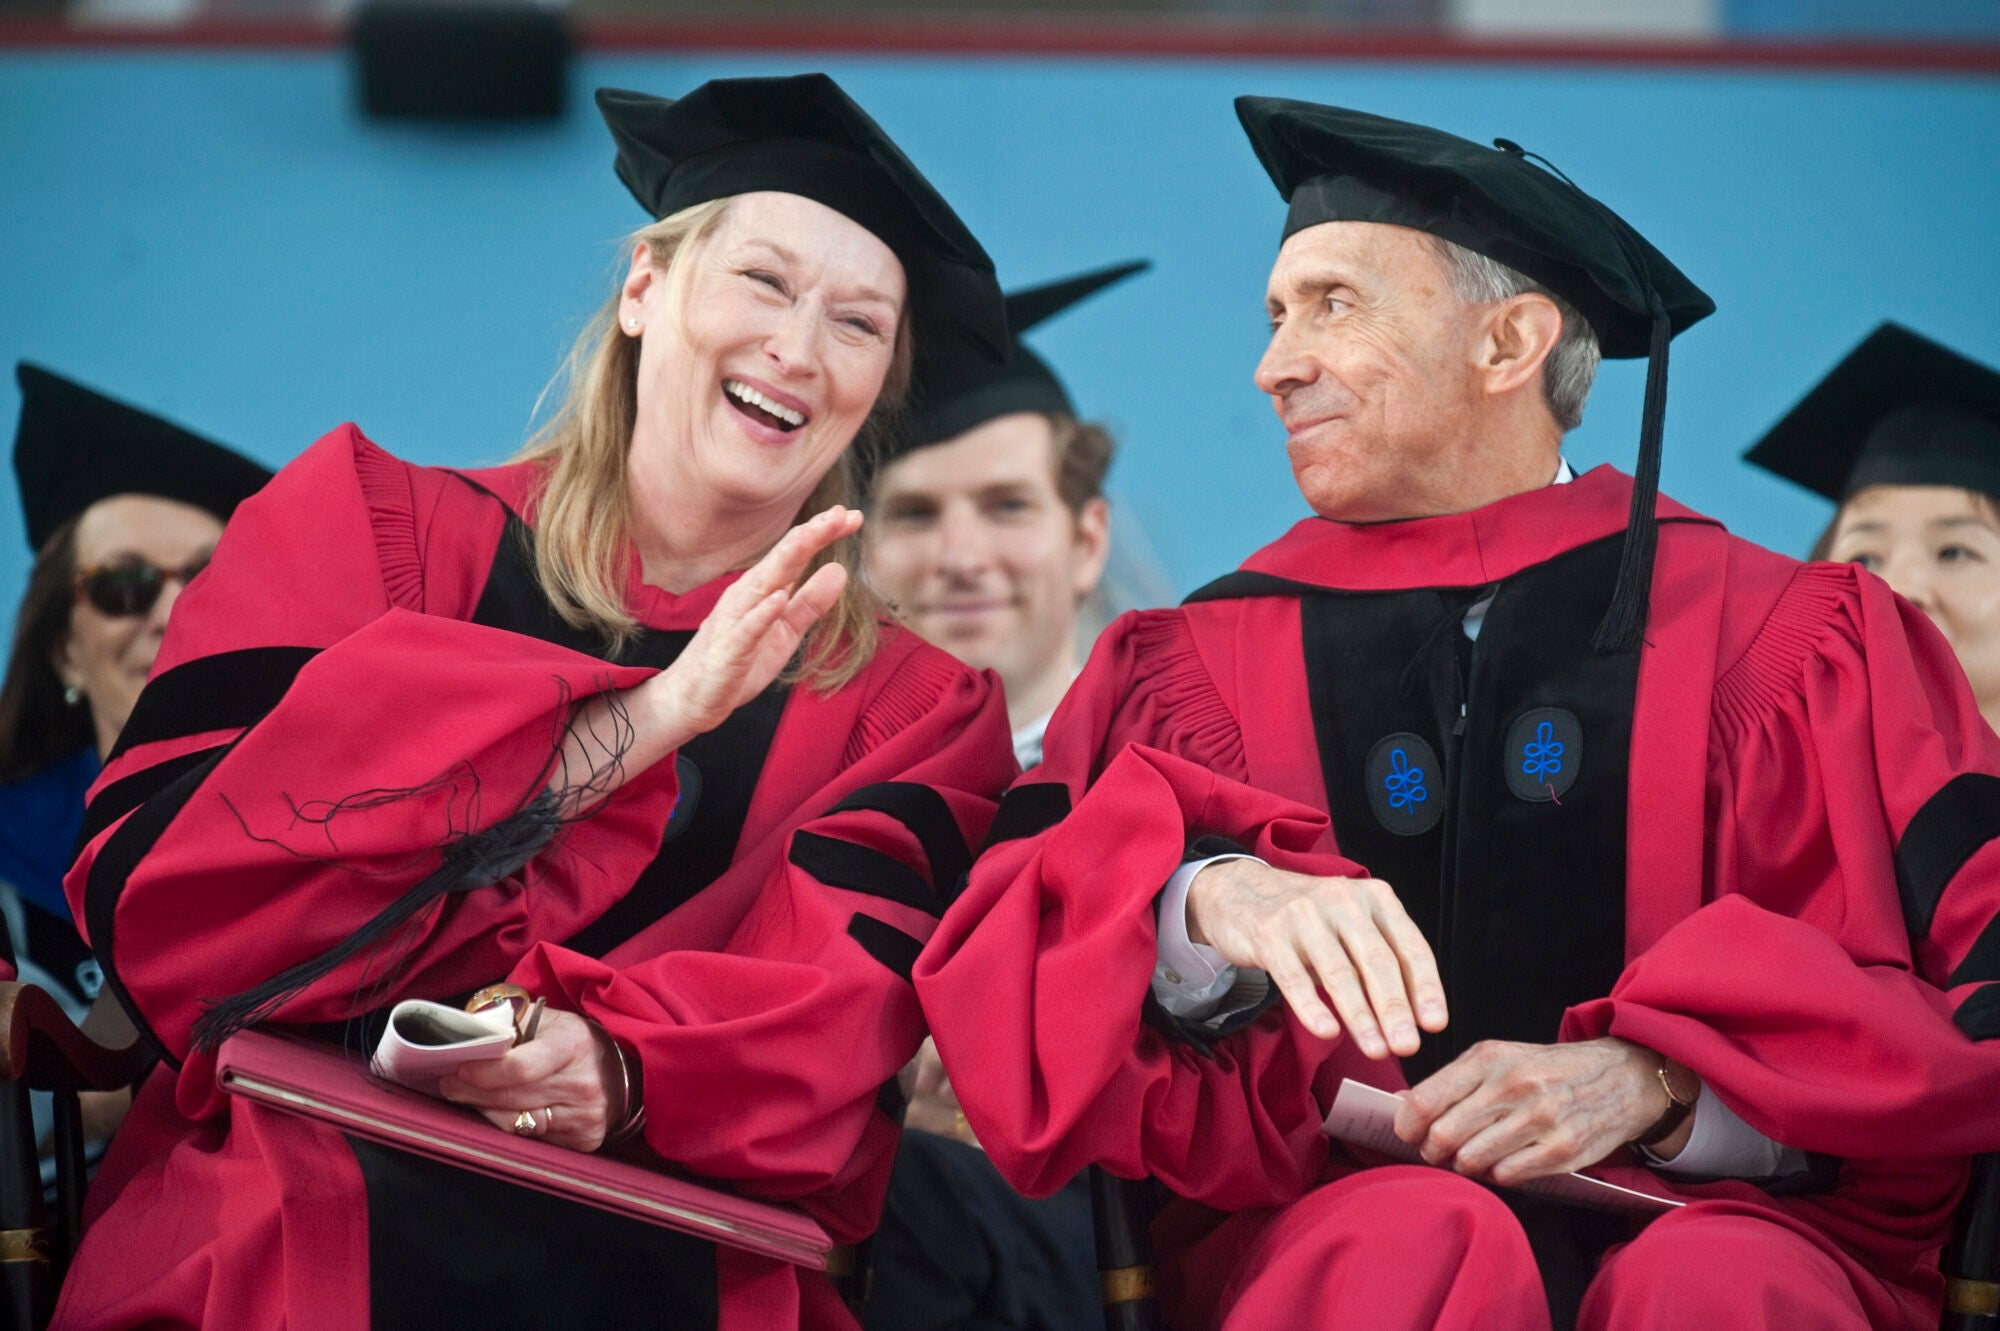 Meryl Streep laughing in her cap and gown